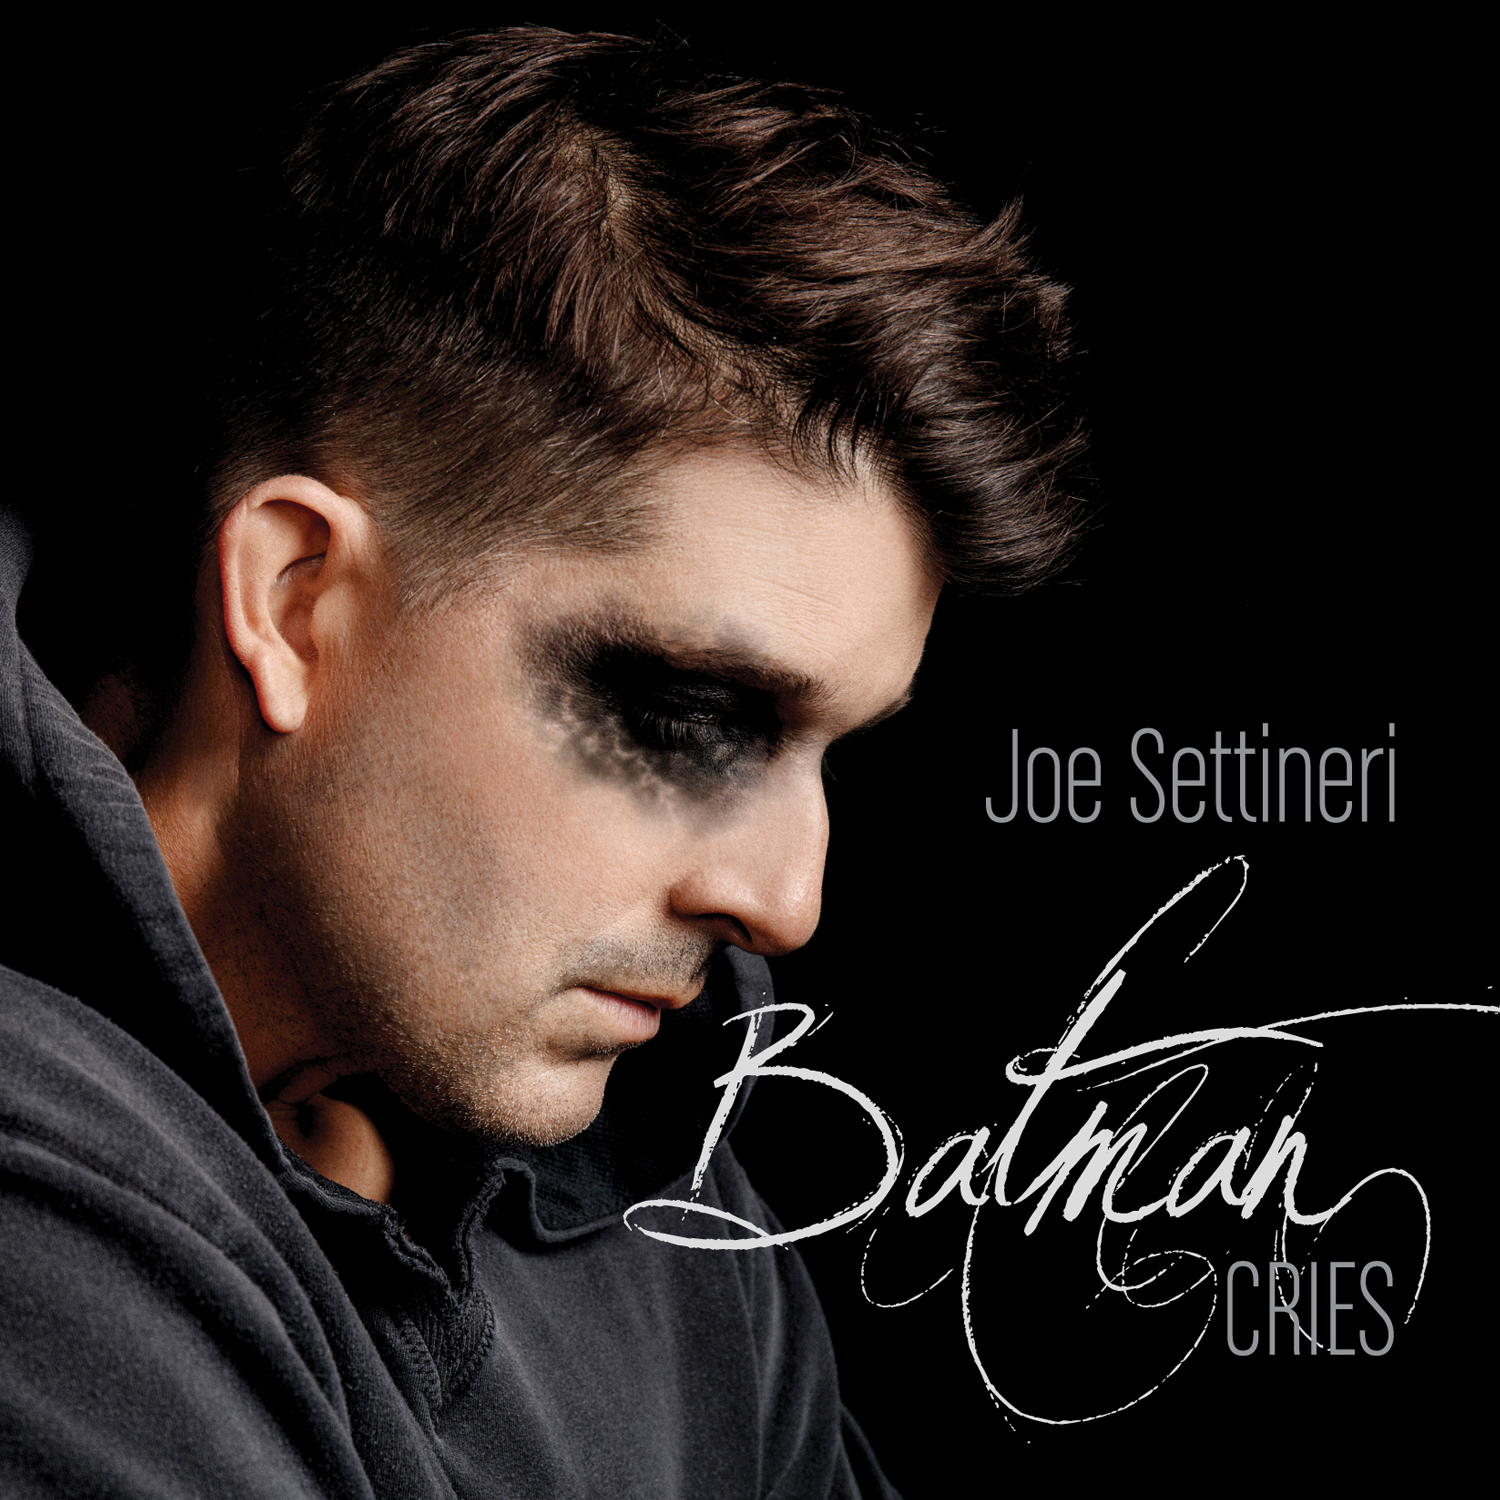 Joe_S_BatmanCries_1500x1500xgc.jpg